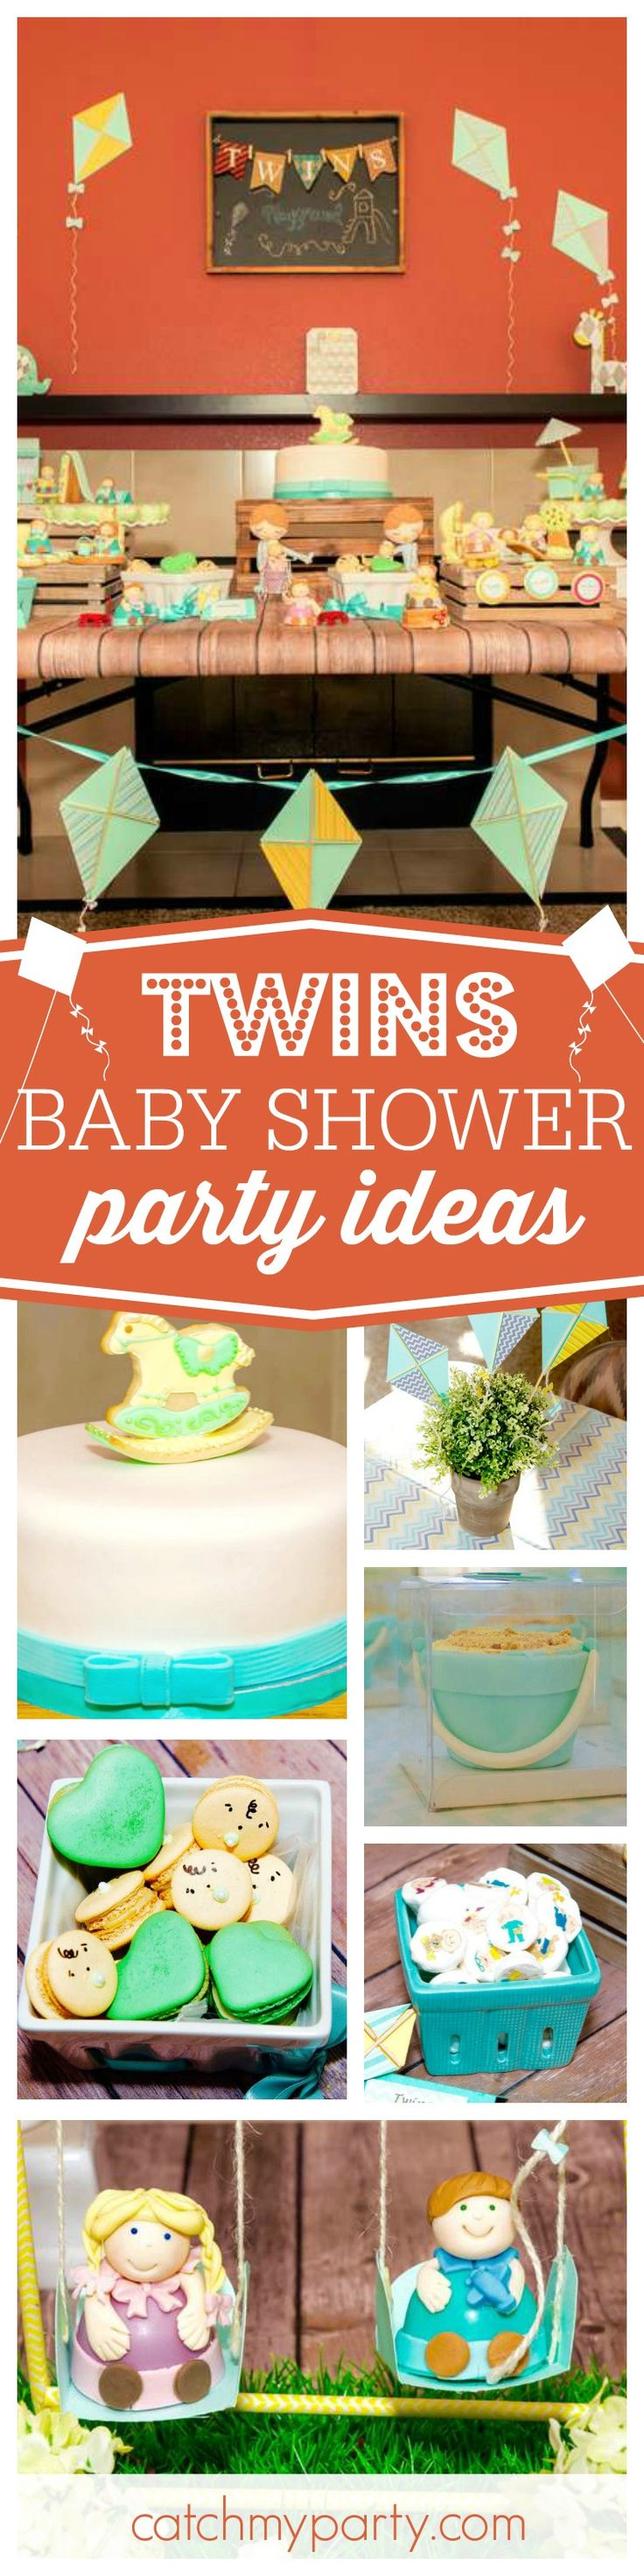 Check out this fun Twin 'playground' Baby Shower! The little people desserts are so cute!! See more party ideas and share yours at CatchMyParty.com